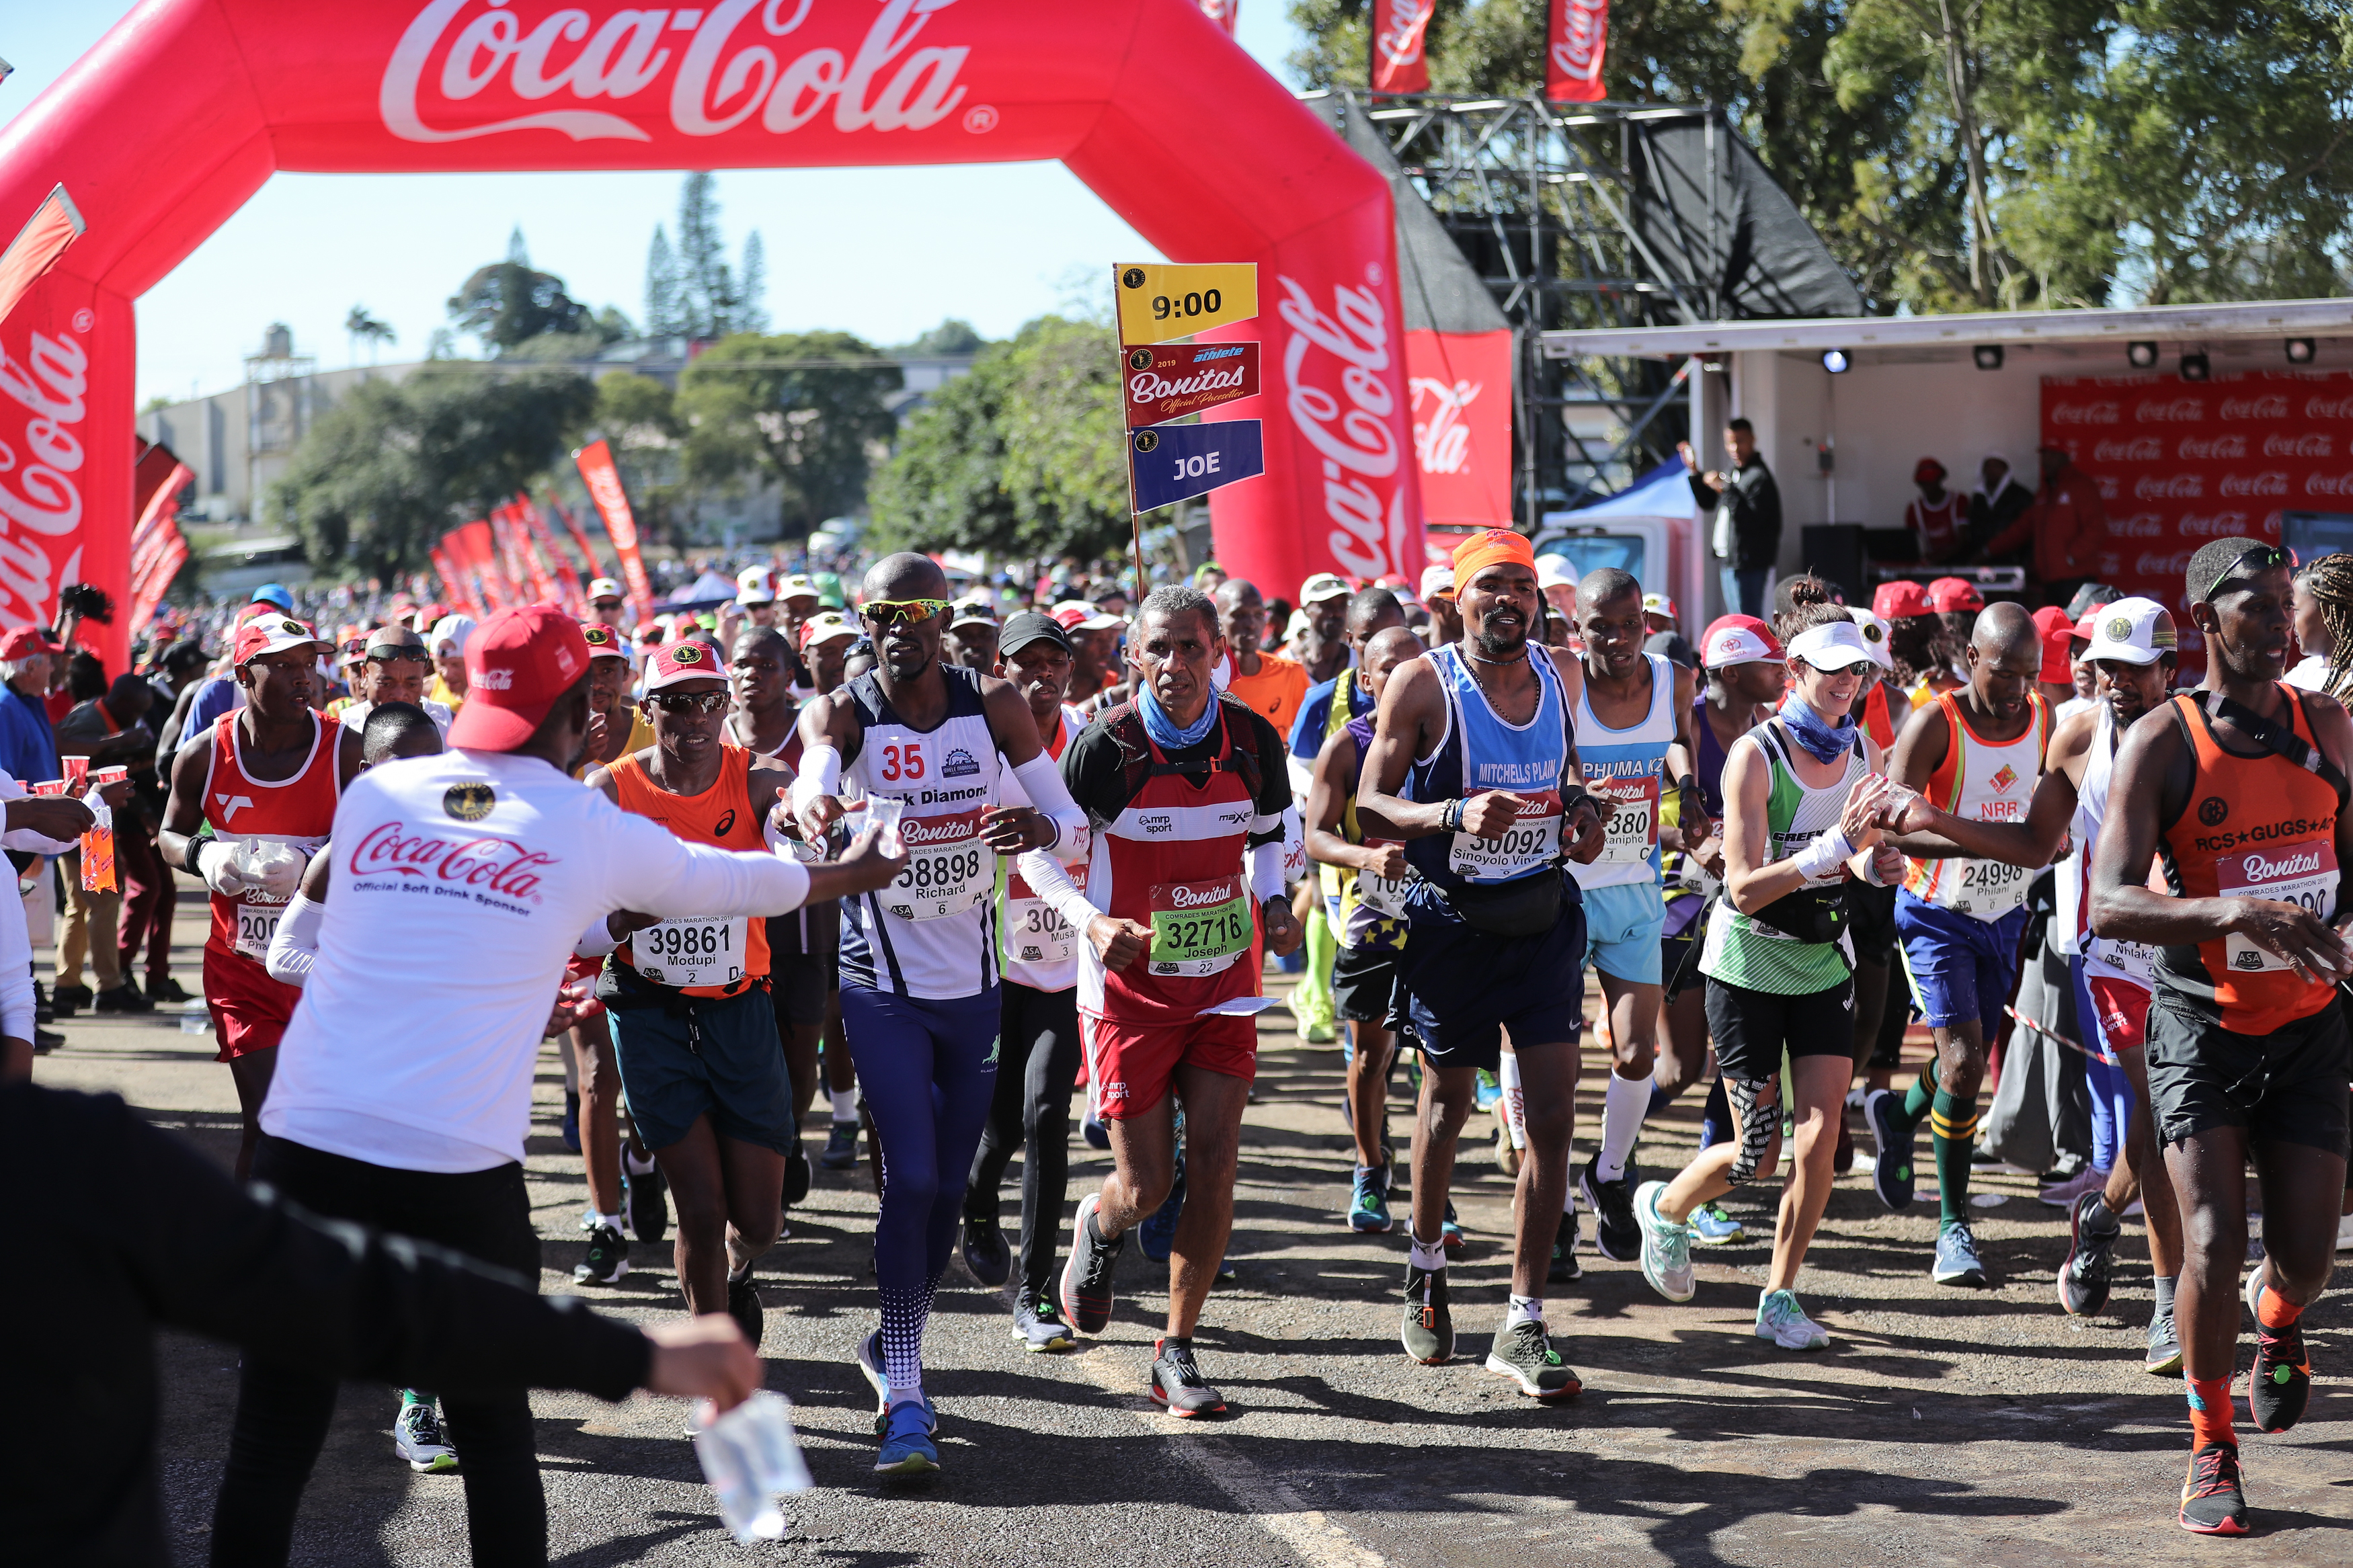 General view of activities during the Coca-Cola On-Route Activation at the 94th Comrades Marathon on June 09, 2019 in Durban, South Africa.